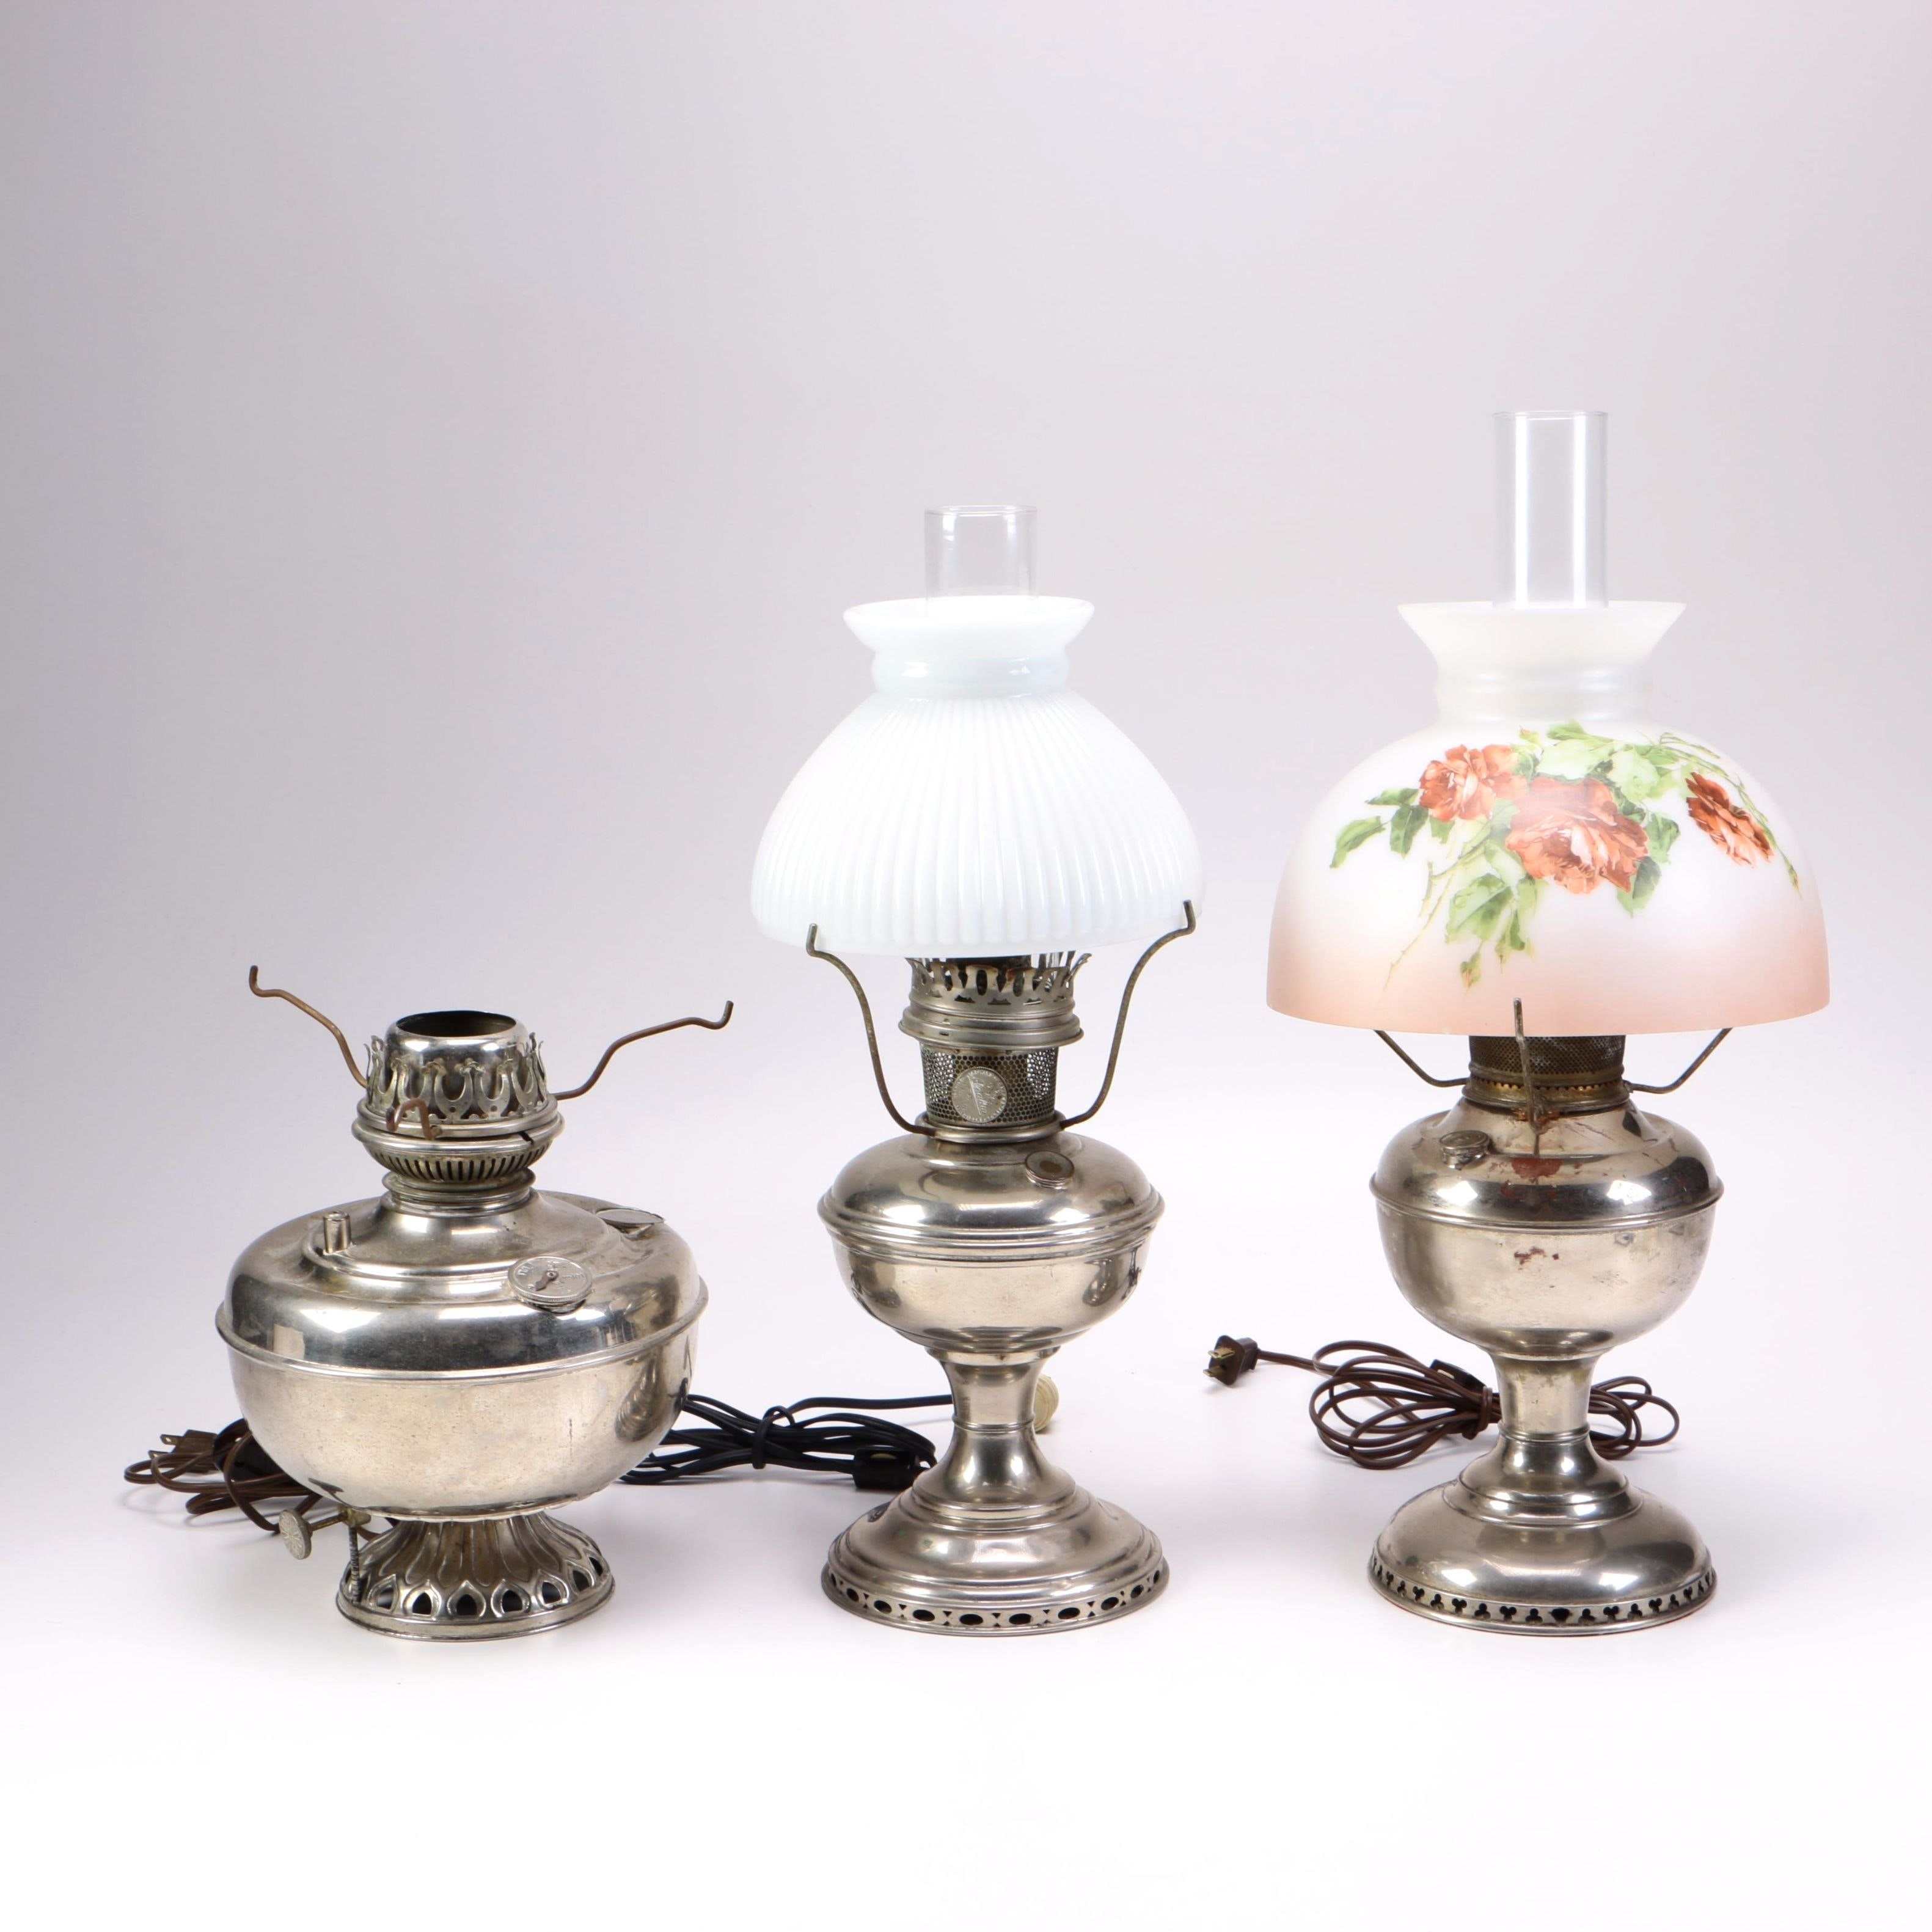 Silver-Tone Electric Hurricane Lamps